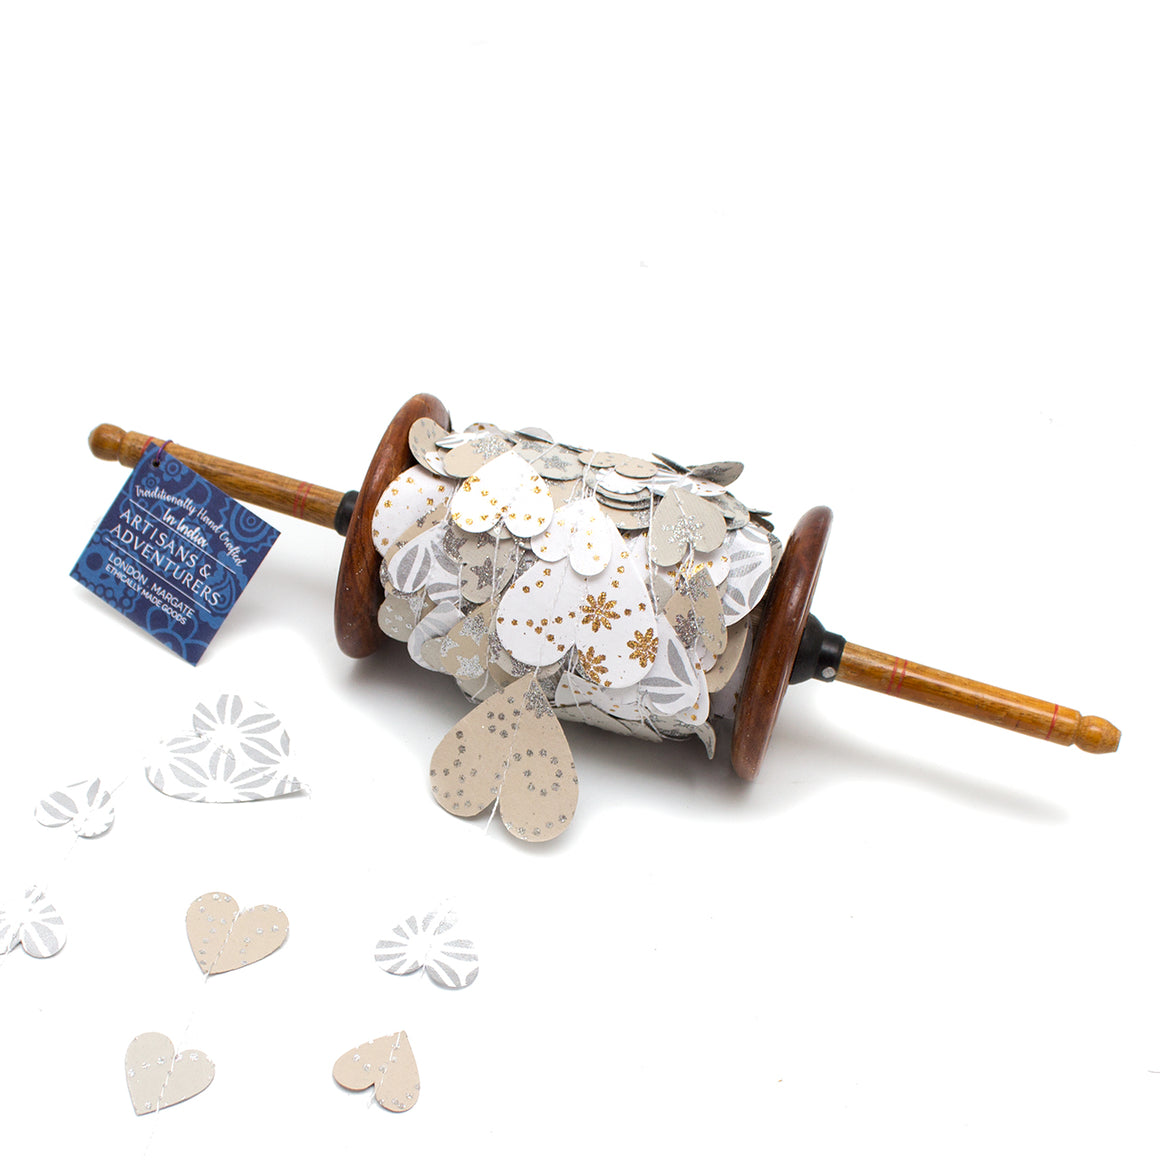 Wooden spool hand made using recycled paper in India with 25 meters of white, silver and gold hearts for wedding and christening decorations.